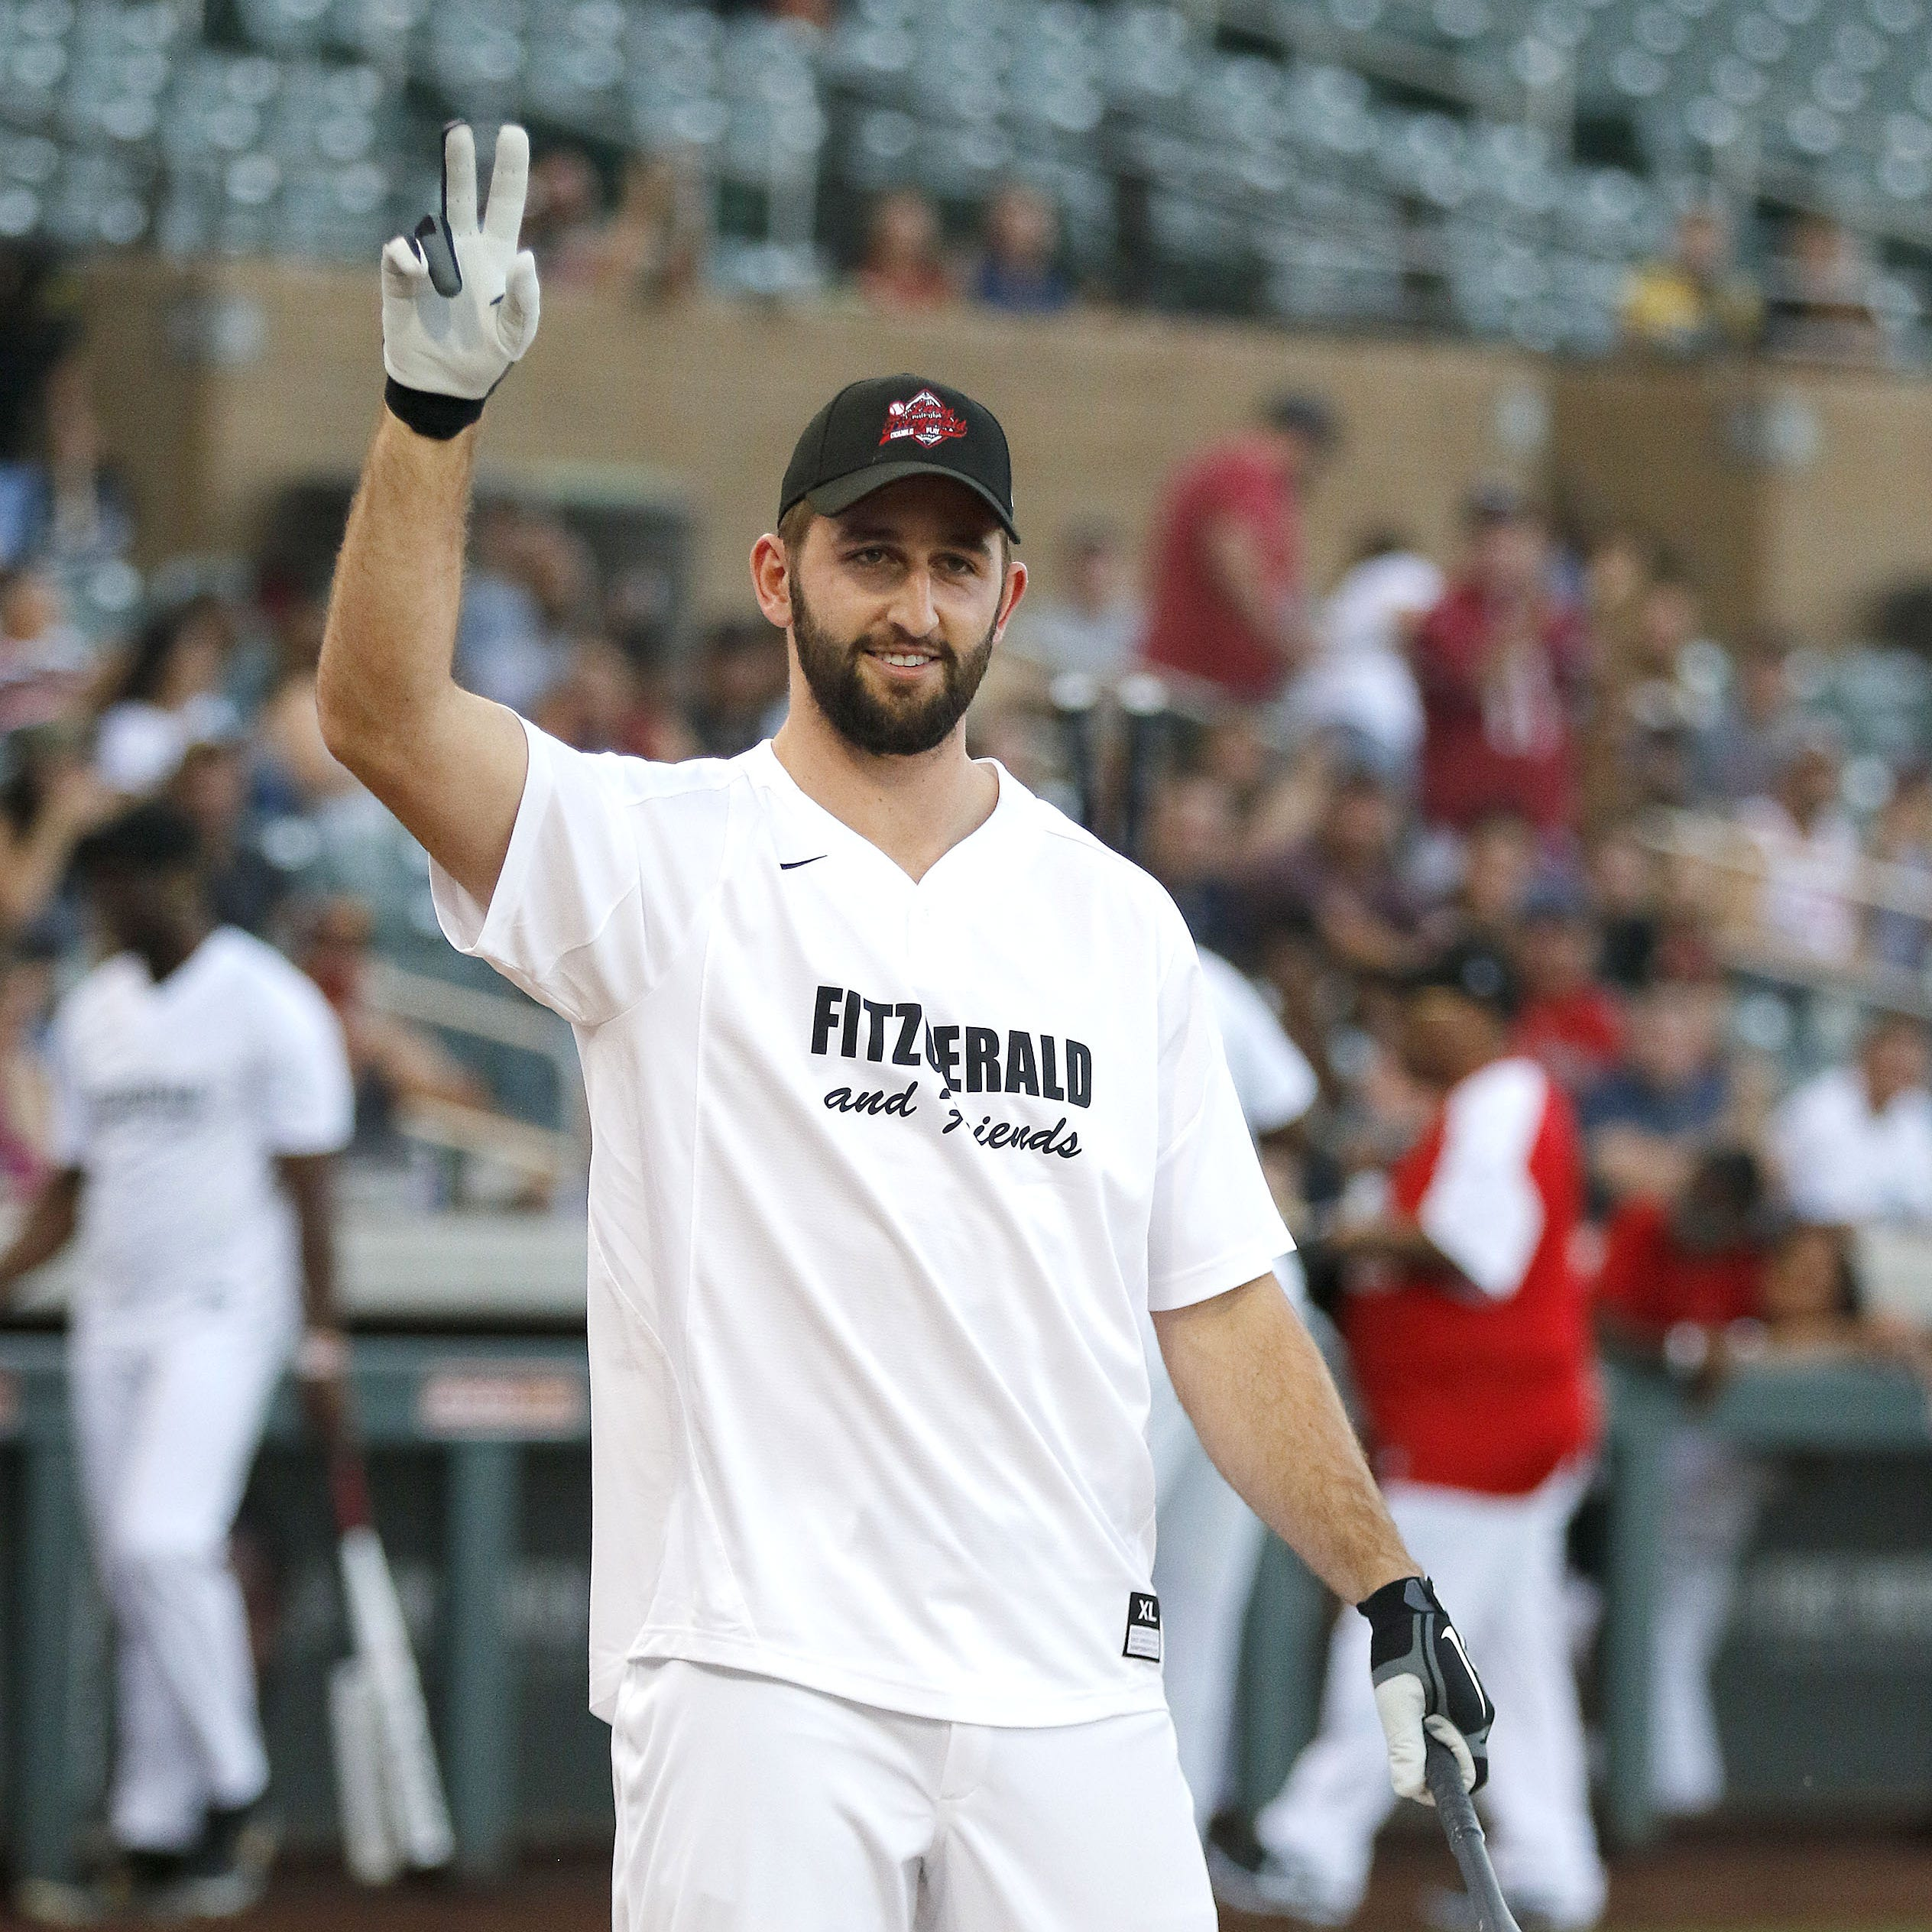 Josh Rosen receives standing ovation before winning HR derby, thanking fans at Larry Fitzgerald's softball game